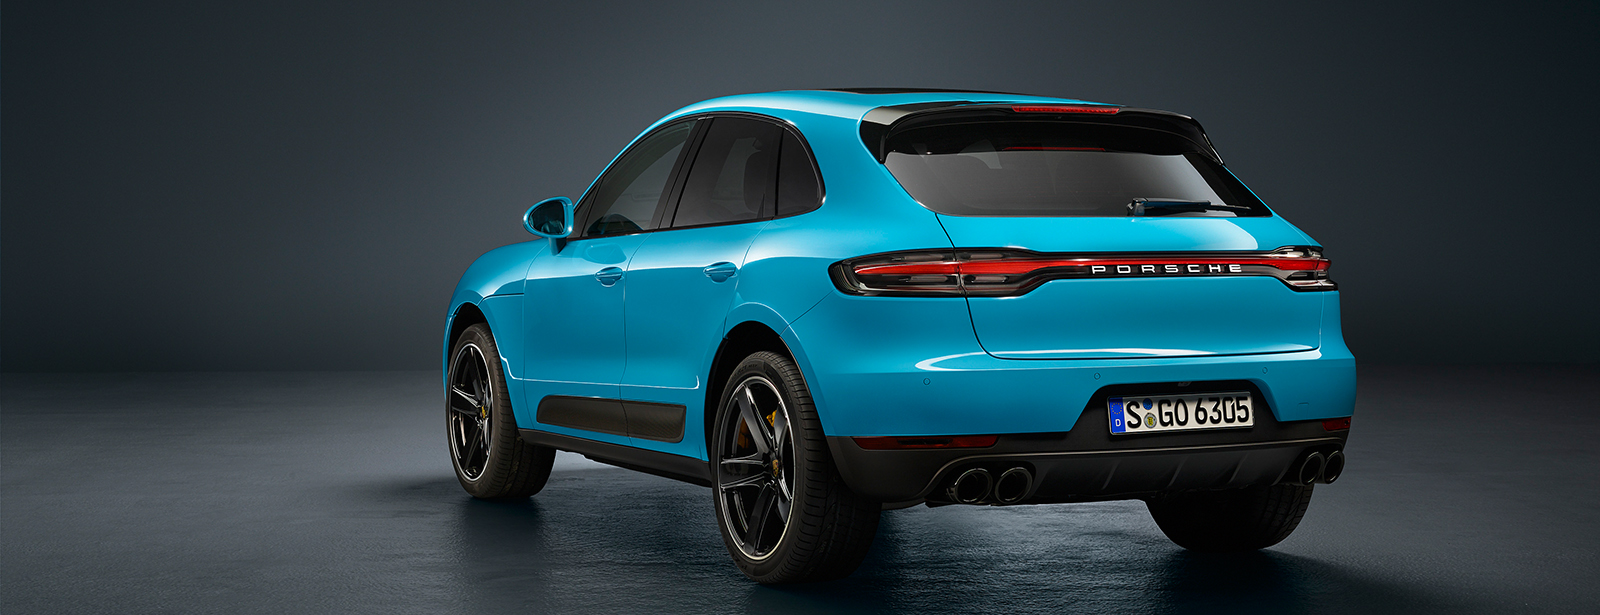 A world premiere in Shanghai: Porsche presents the new Macan